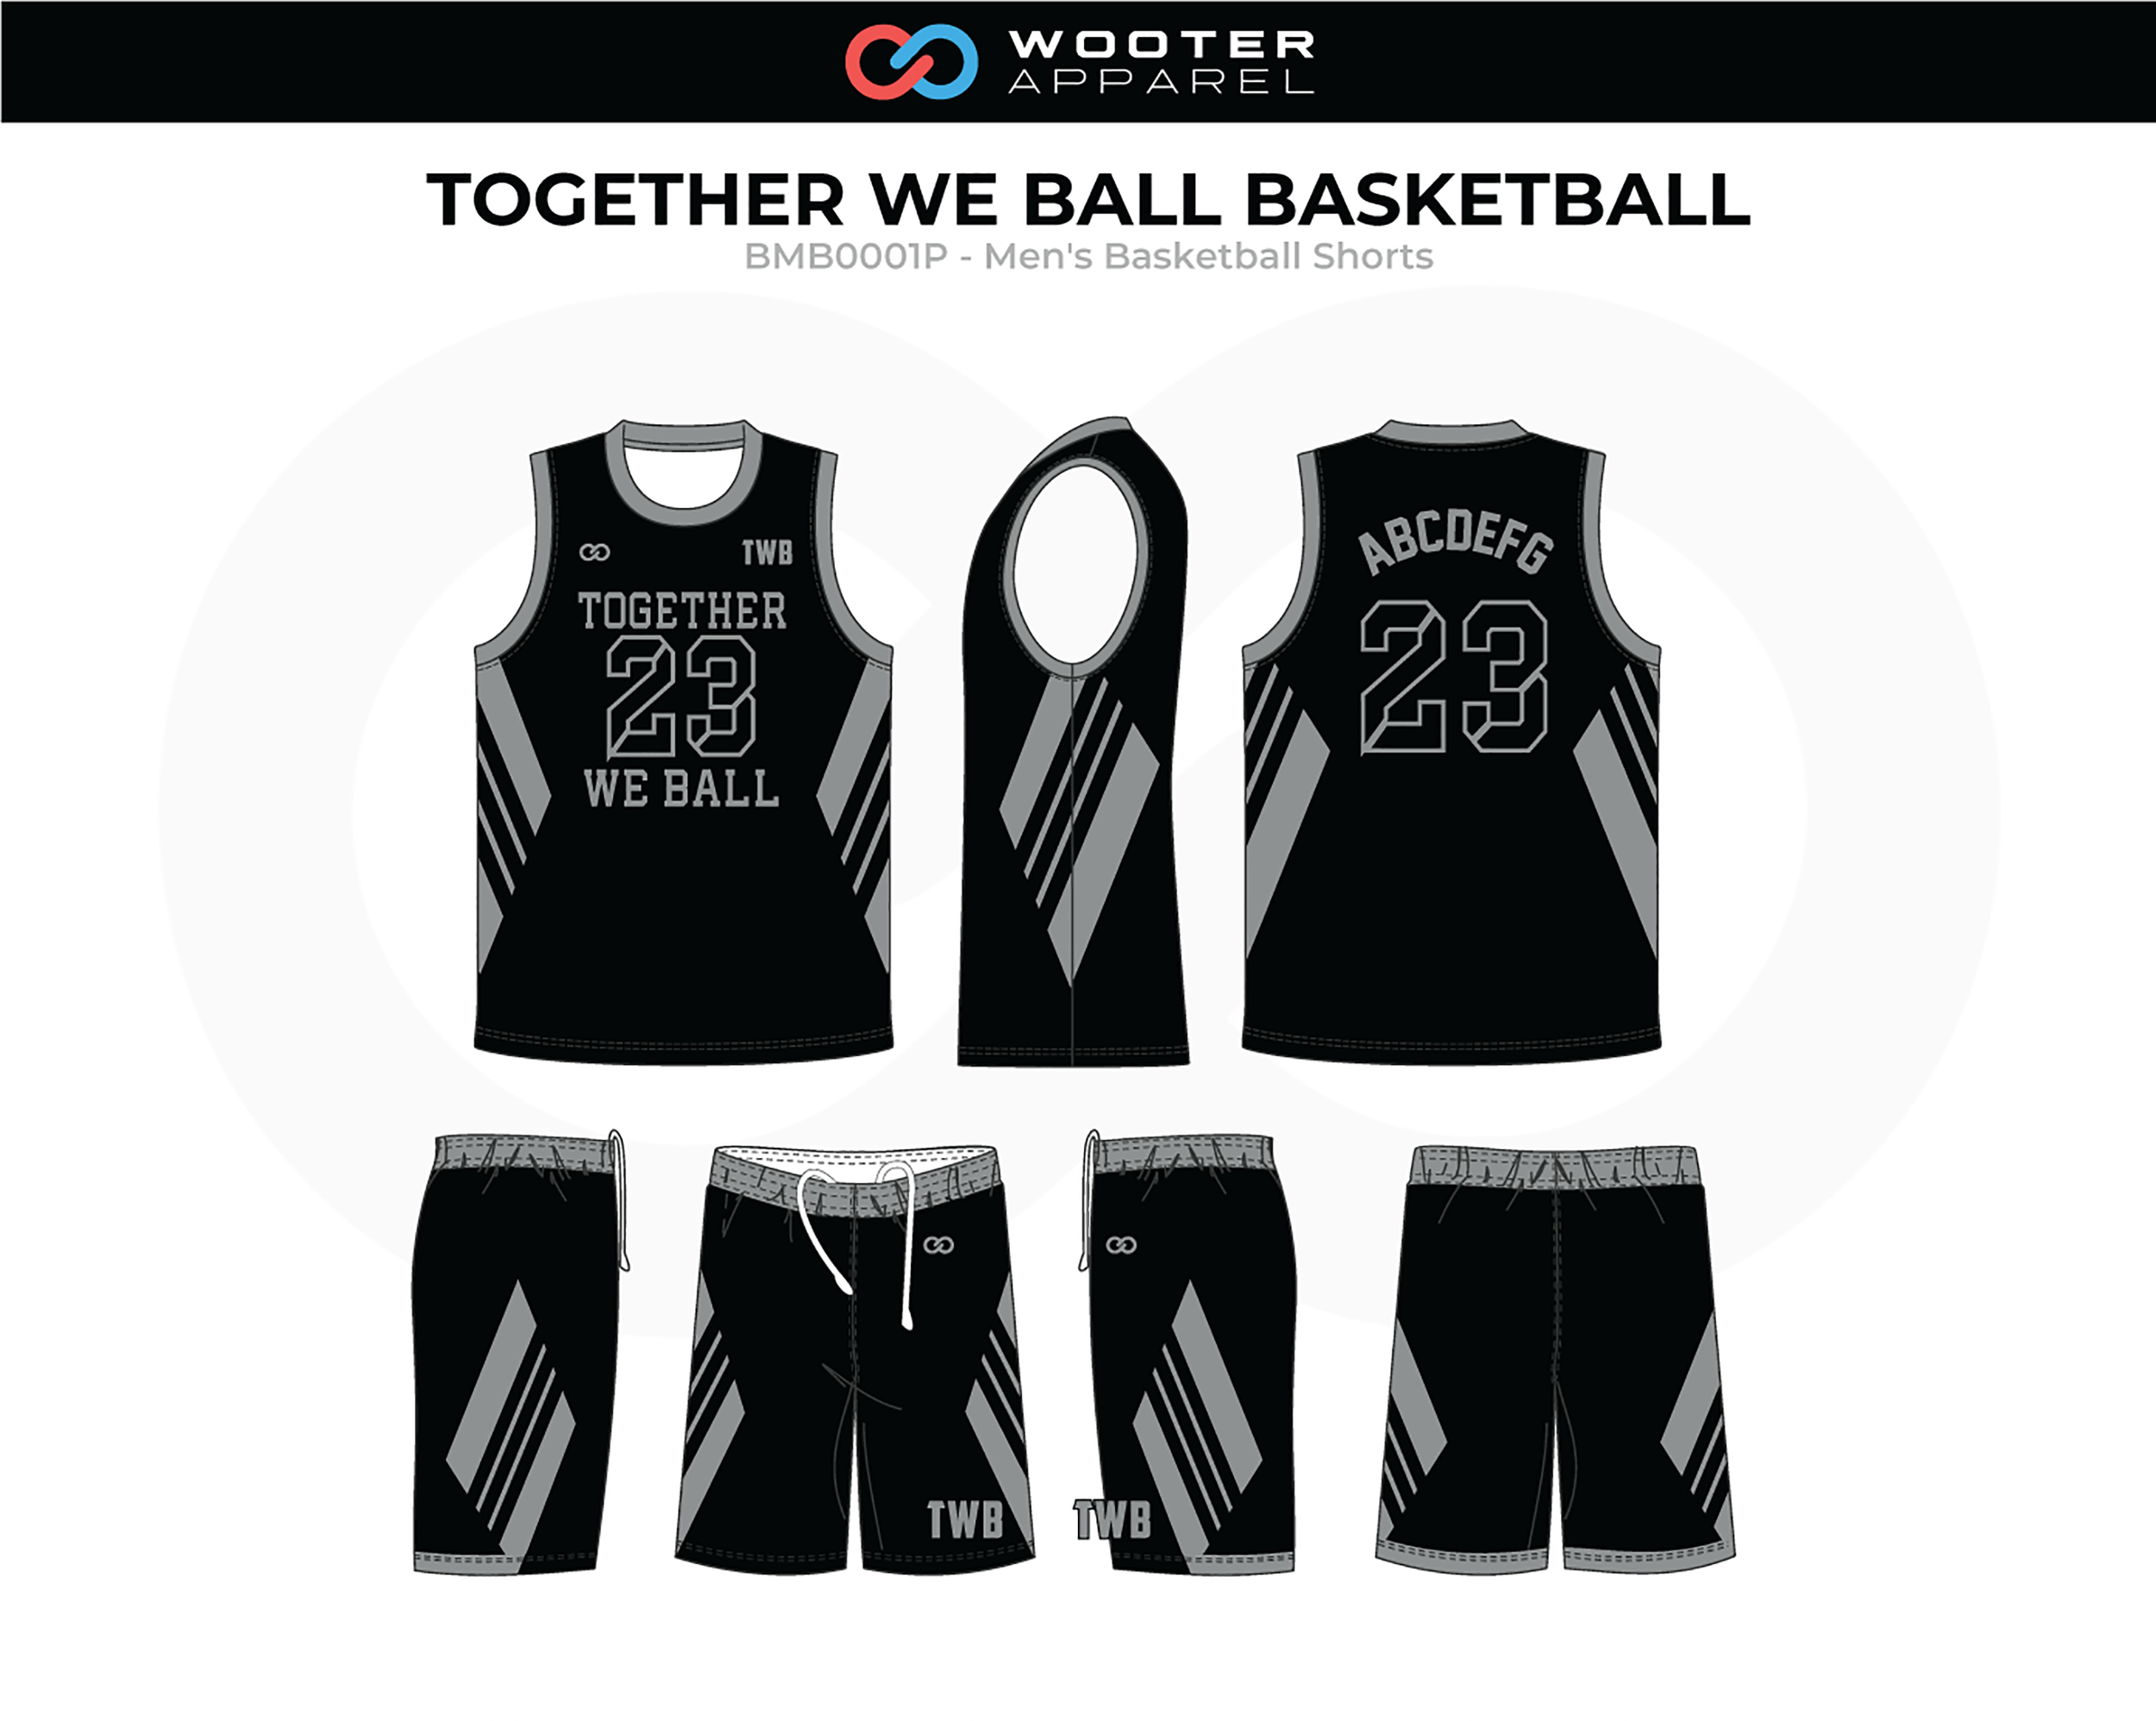 TOGETHER WE BALL Black Grey Men's Basketball Uniform, Jersey and Shorts